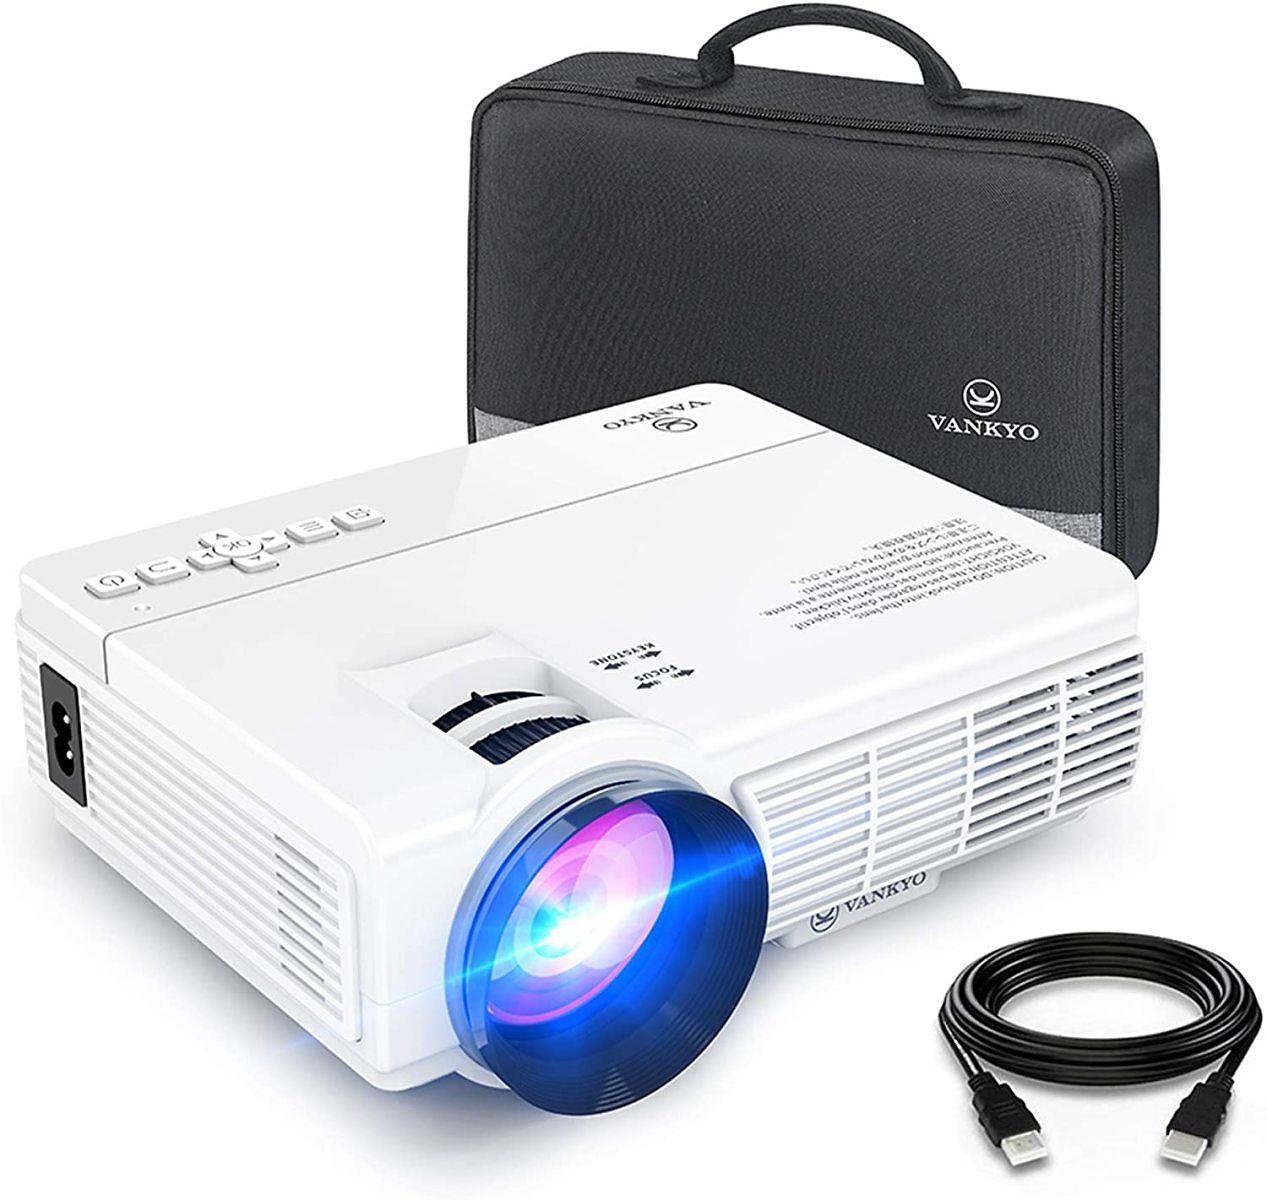 30% Off VANKYO LEISURE 3 Mini Projector, 1080P and 170'' Display Supported, Portable Movie Projector with 40,000 Hrs LED Lamp Li